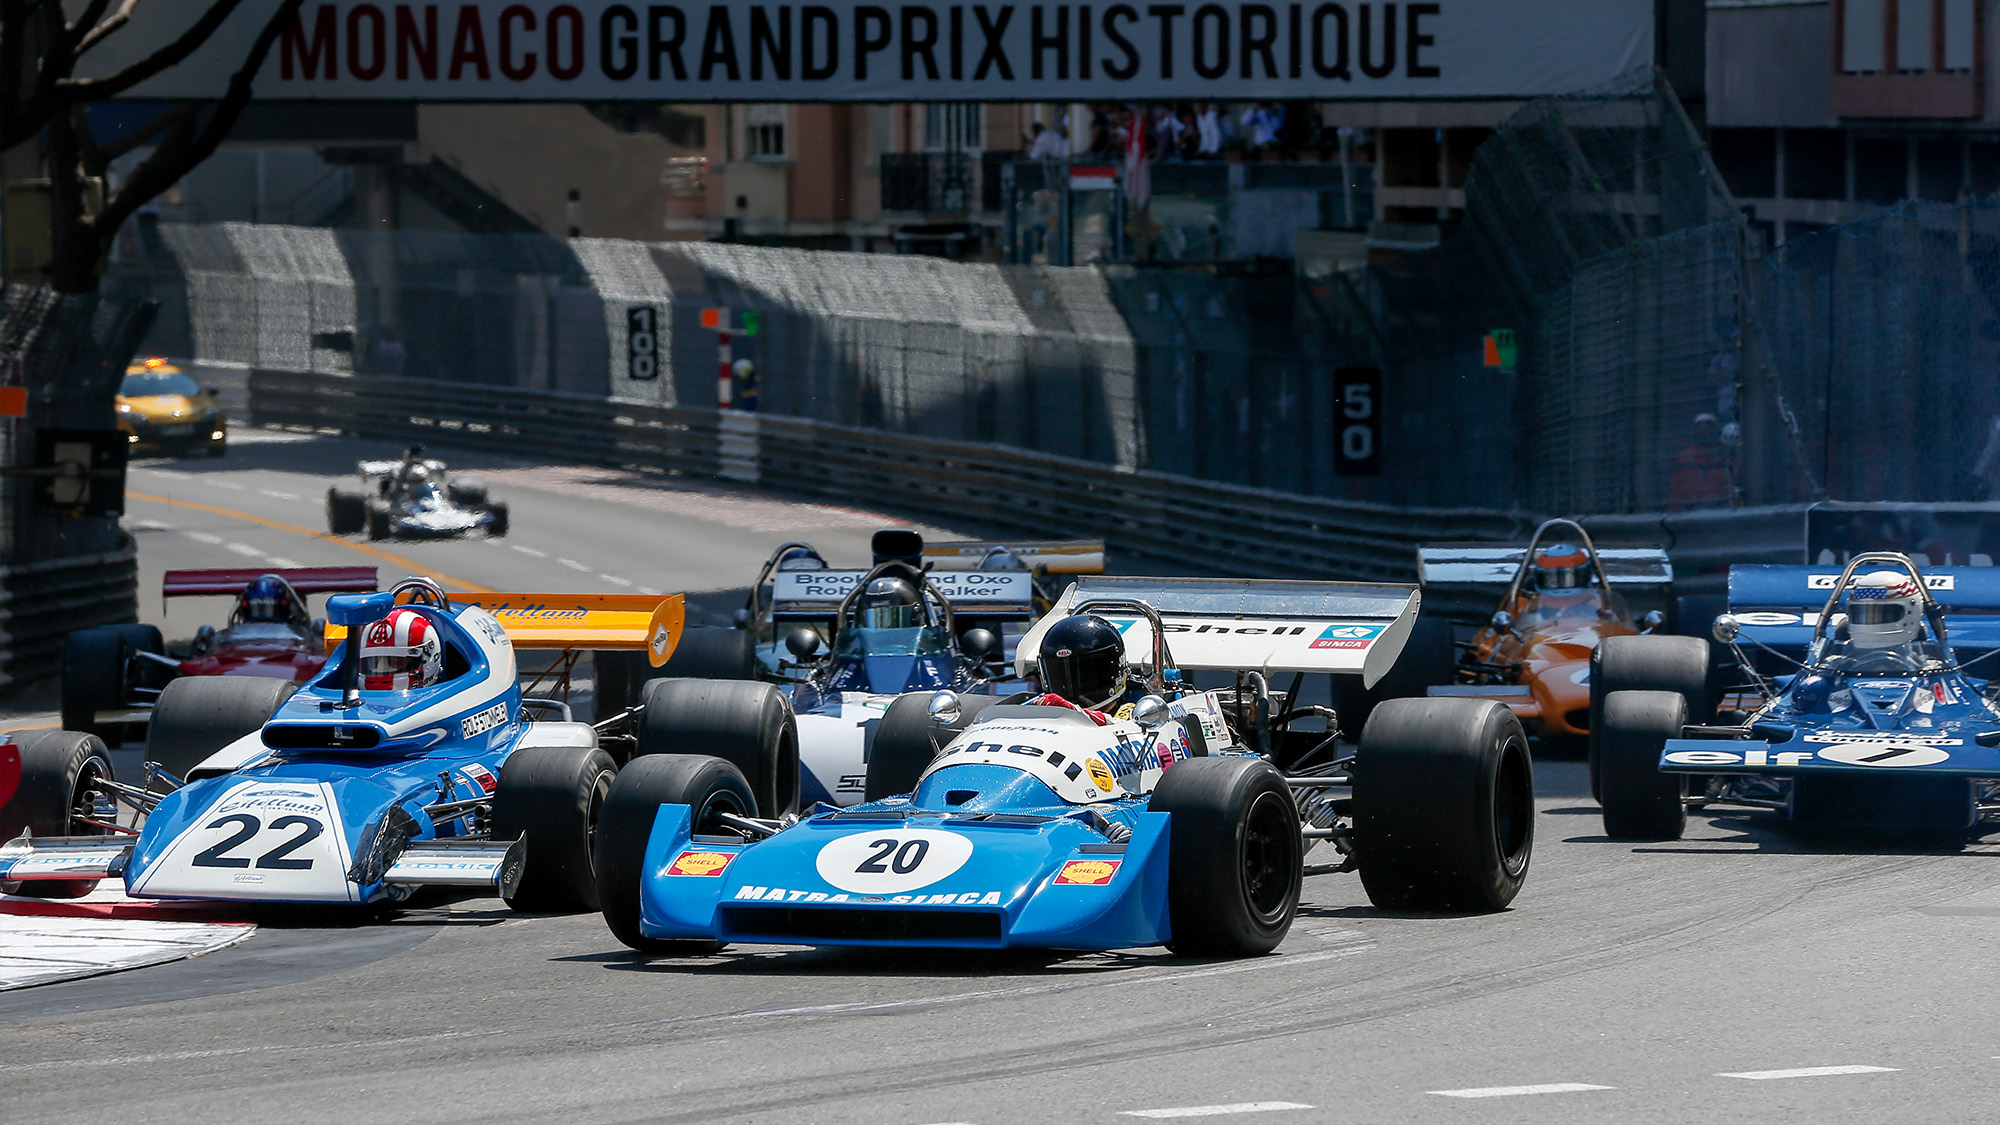 Watch the 2021 Historic Monaco Grand Prix here